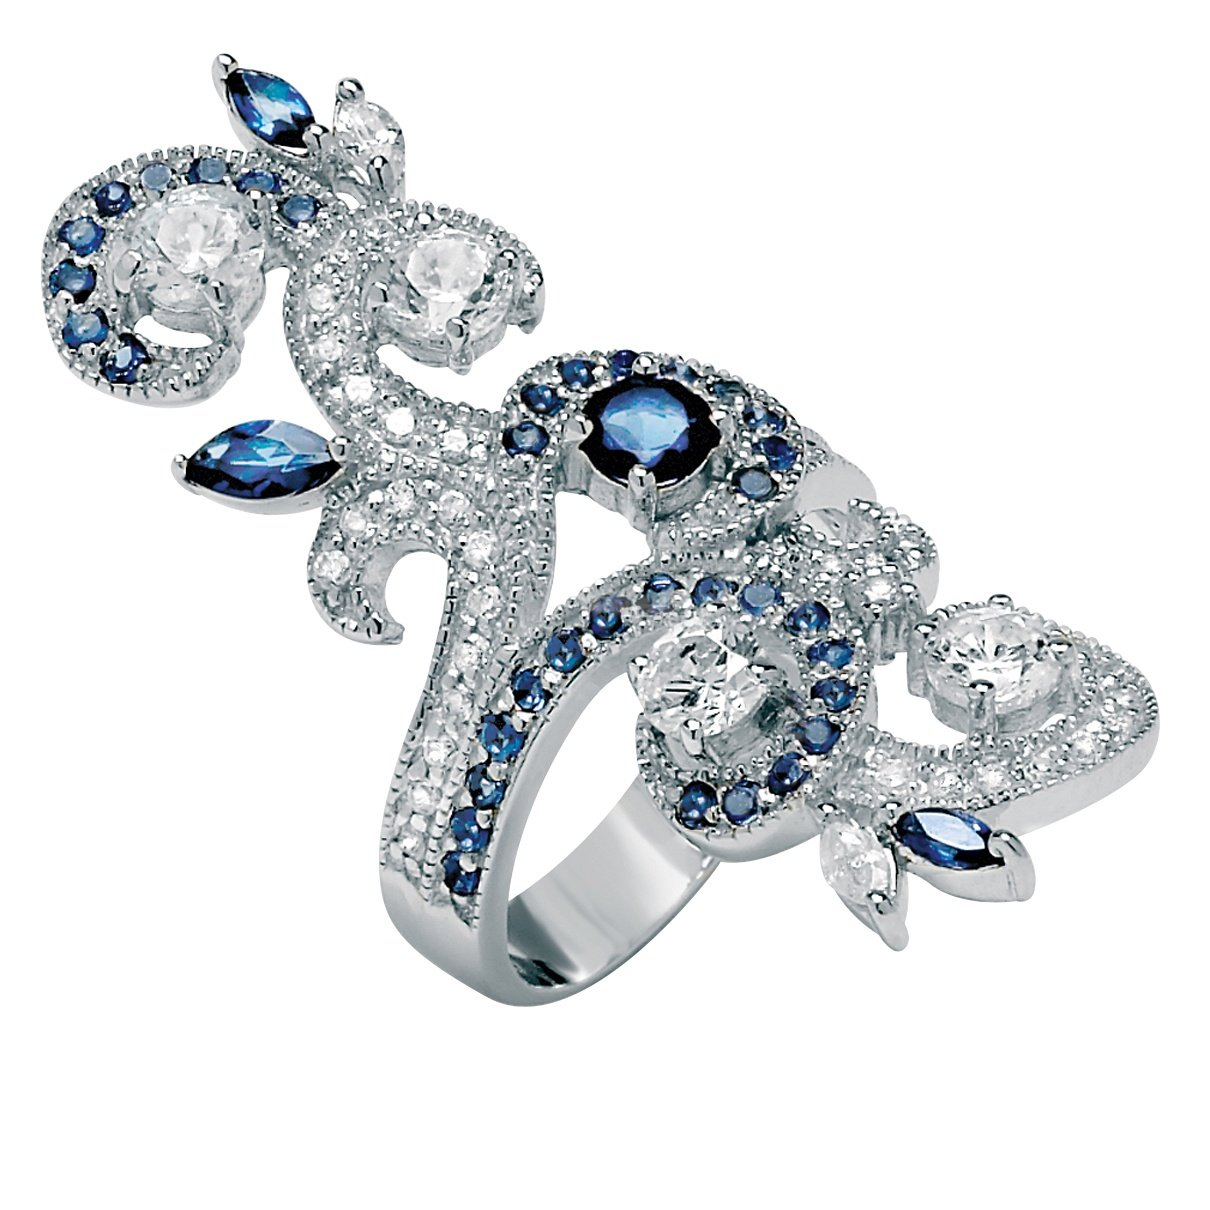 Seta Jewelry Silver Tone Round Cubic Zirconia with Marquise Blue Simulated Sapphire Ring